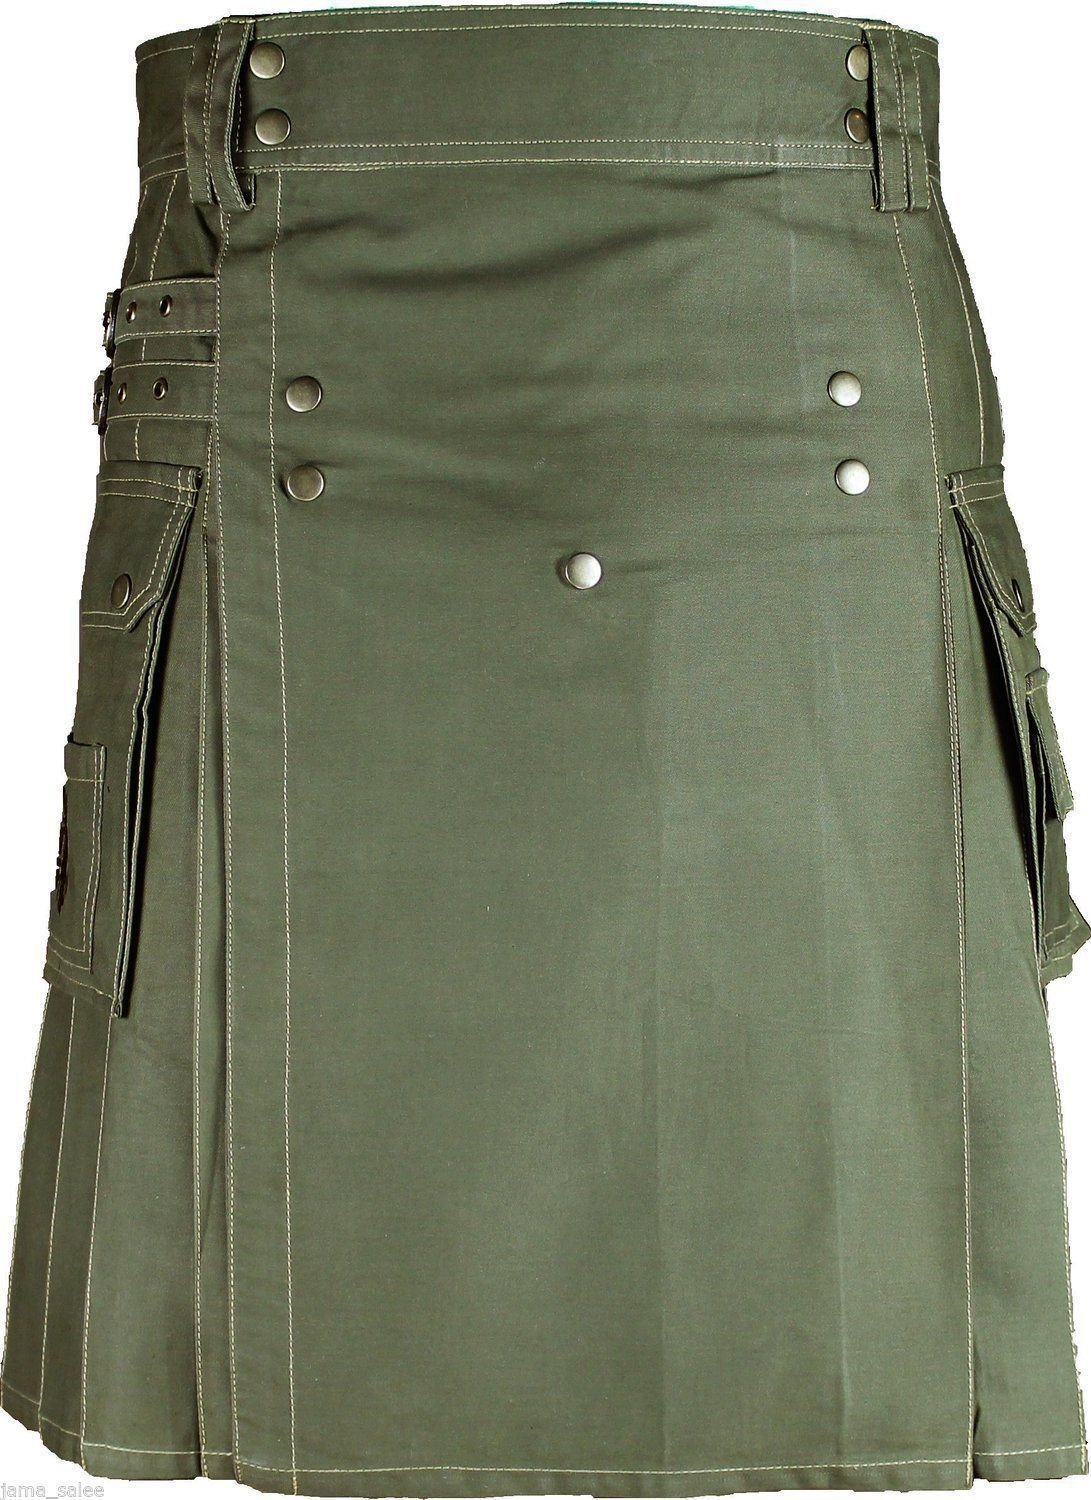 Unisex Modern Utility Kilt Olive Green Cotton Kilt Brass Material Scottish Kilt Fit to 30 Waist